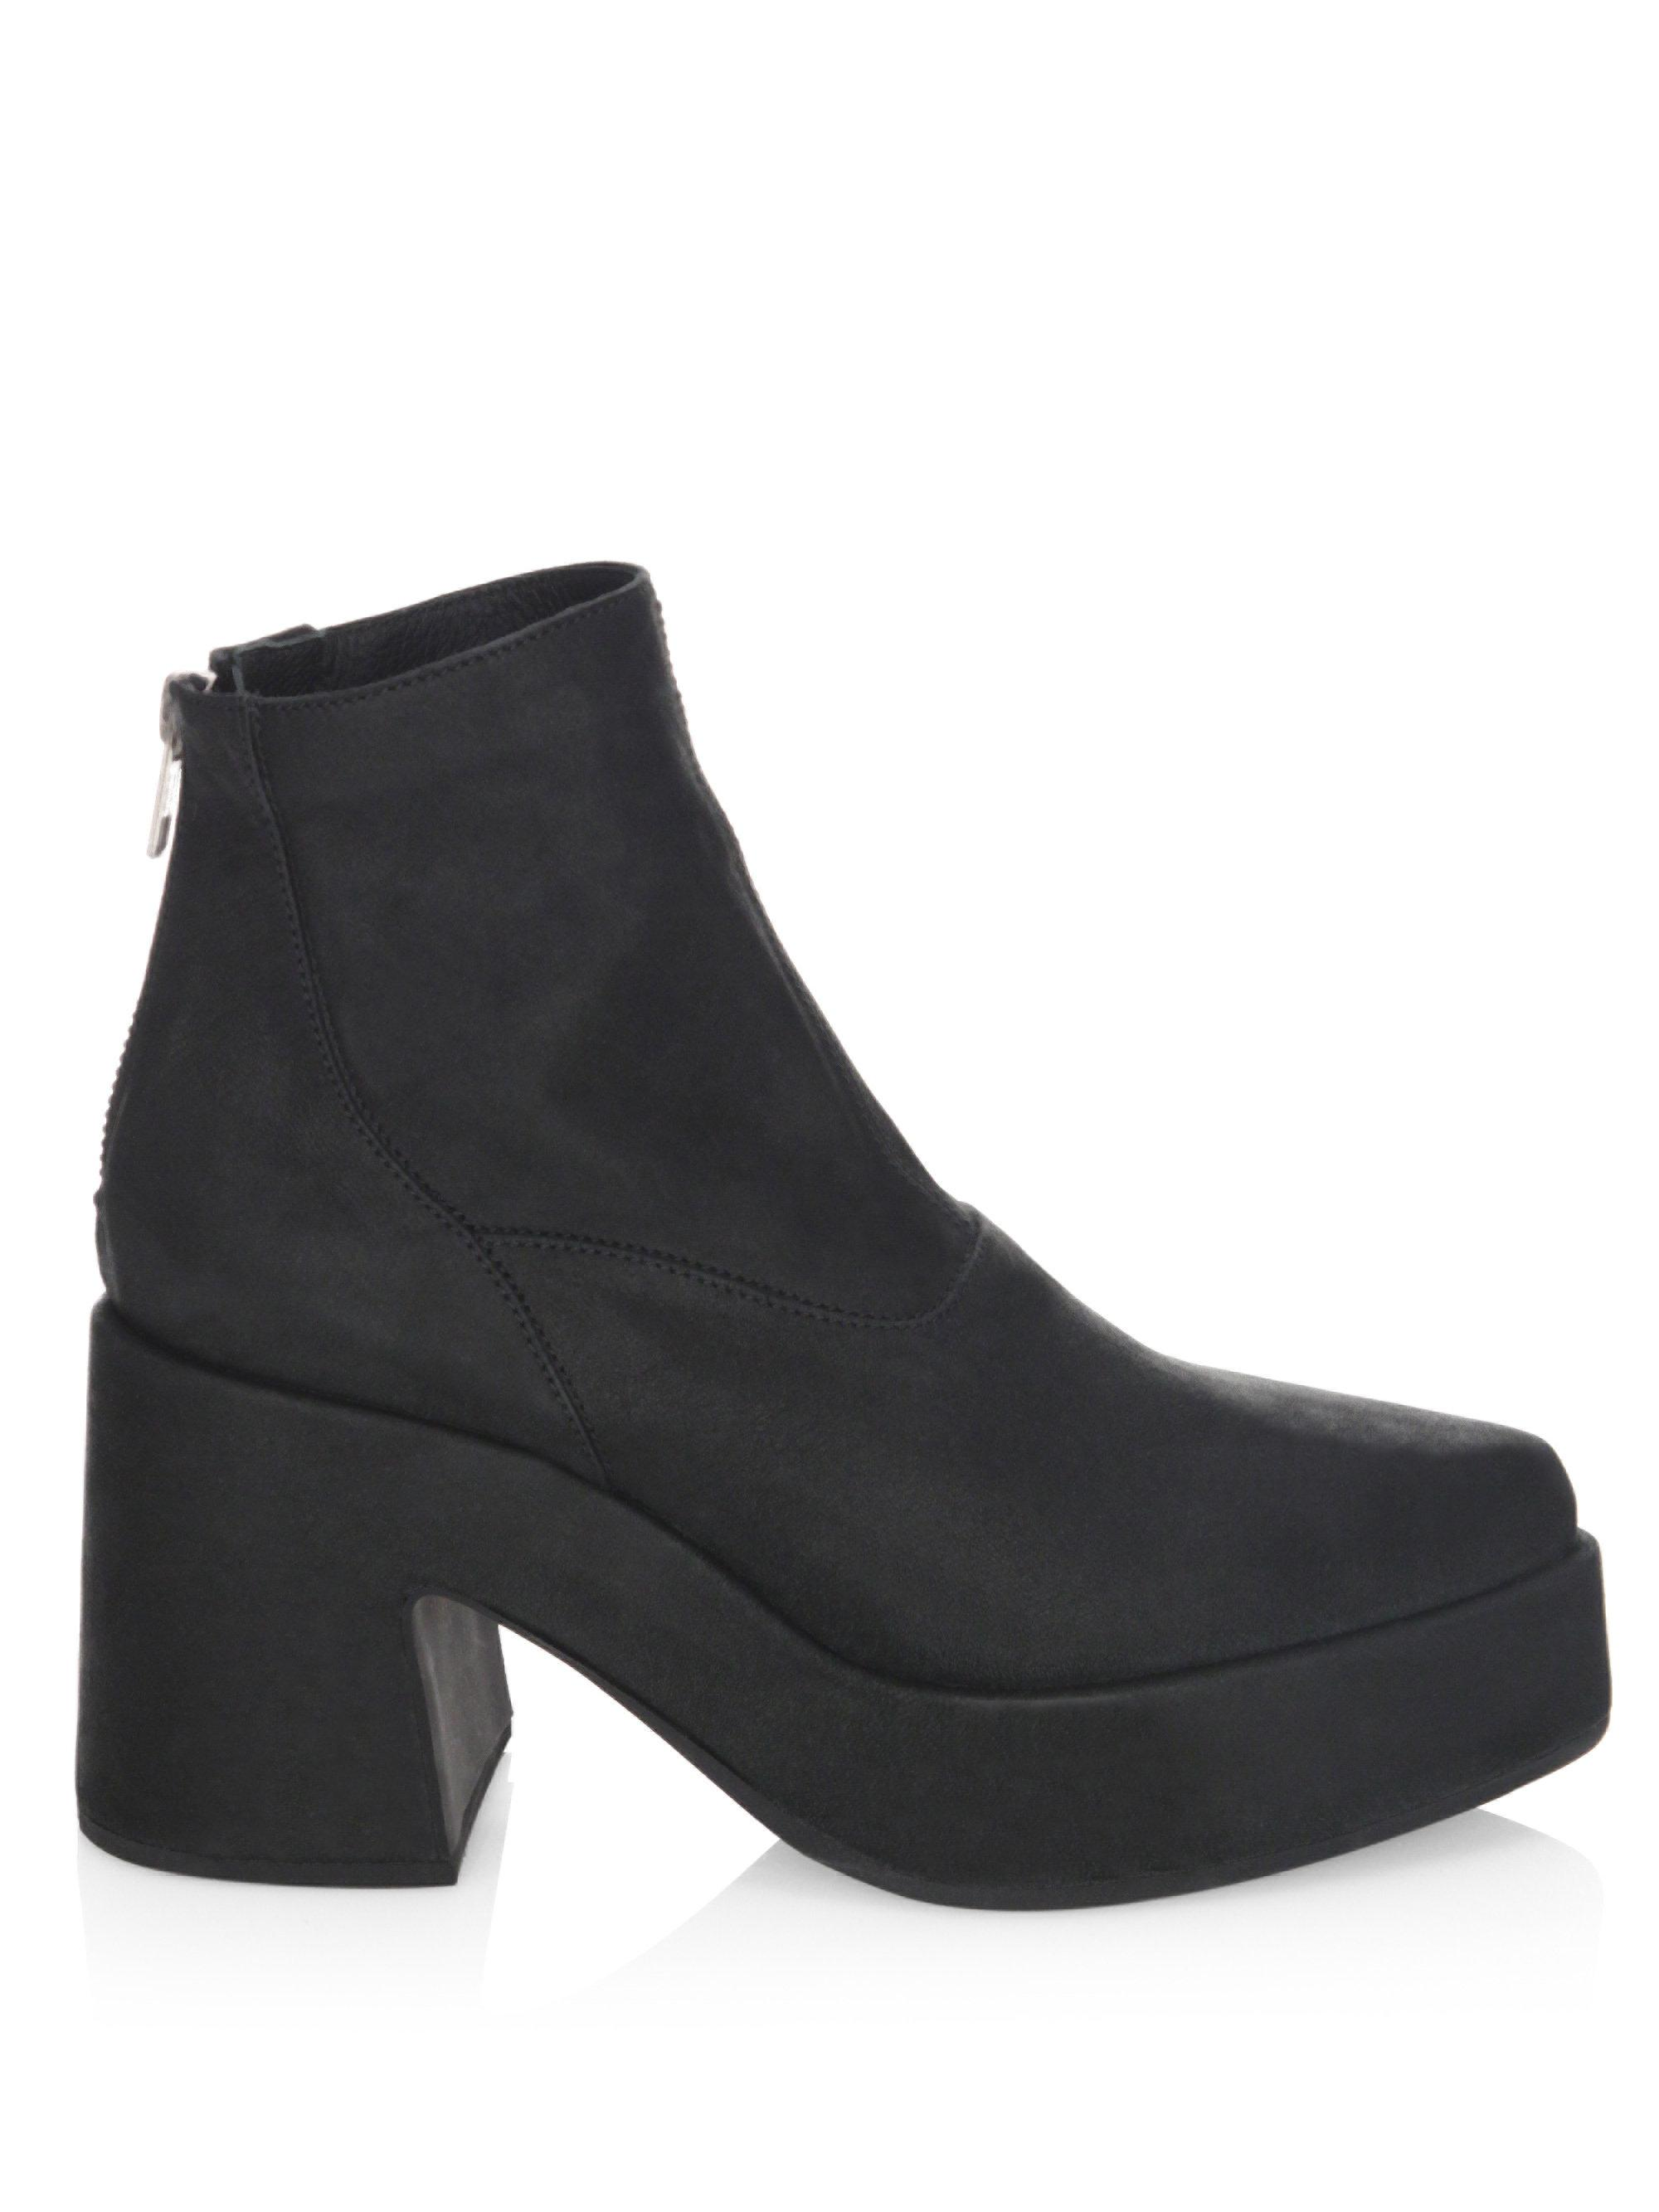 LD Tuttle The Door Suede Platform Boots lGXMyJ